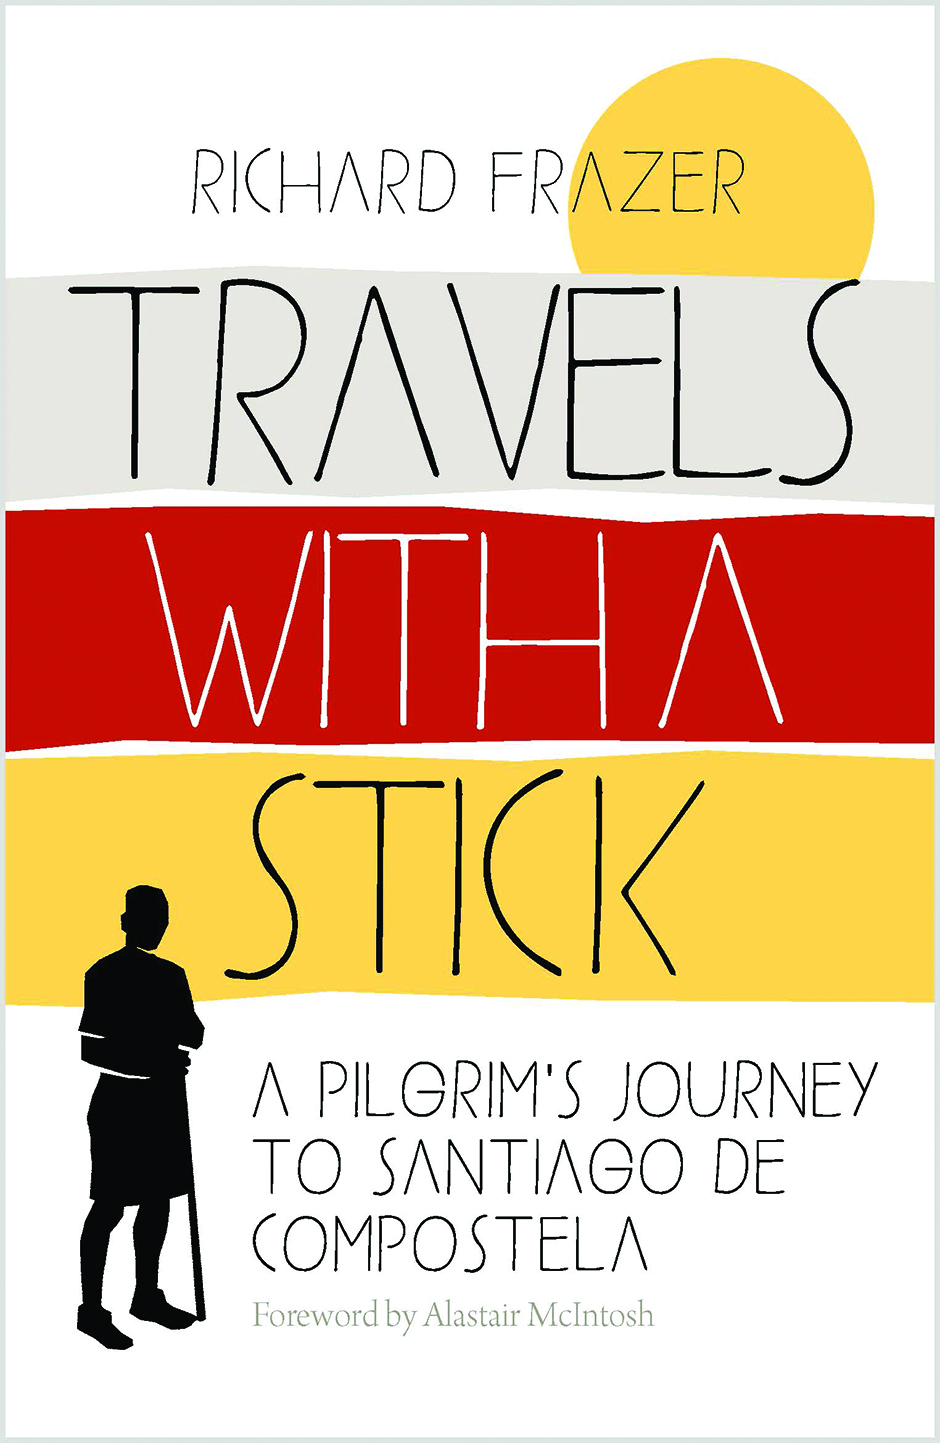 A picture of the front cover of Richard's book - Travels with a Stick